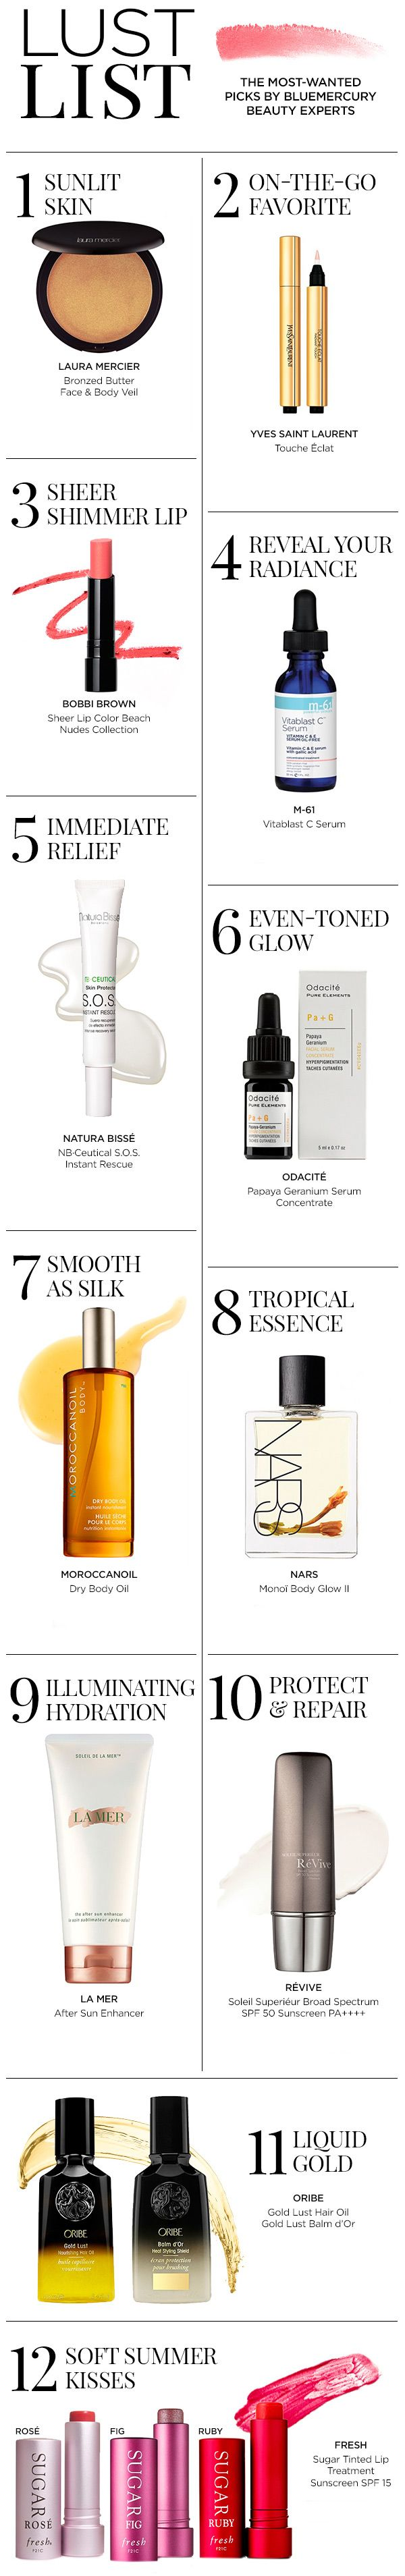 The most-wanted picks by Bluemercury Beauty Experts. Including products from Bobbi Brown, La Mer, Laura Mercier, M-61, Morrocanoil, Nars, YSL and more.